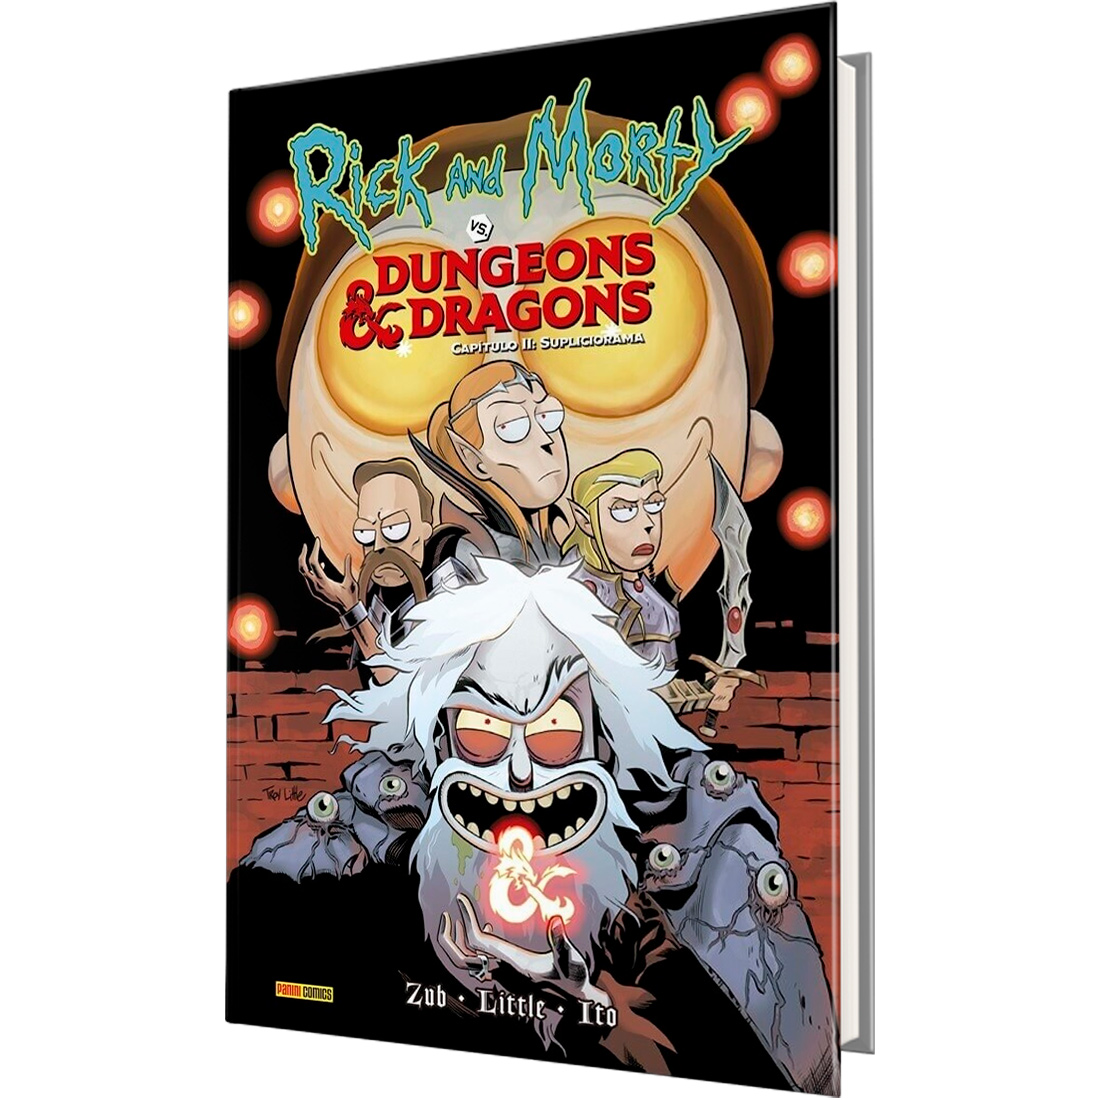 Rick and Morty vs Dungeon & Dragons Vol. 2